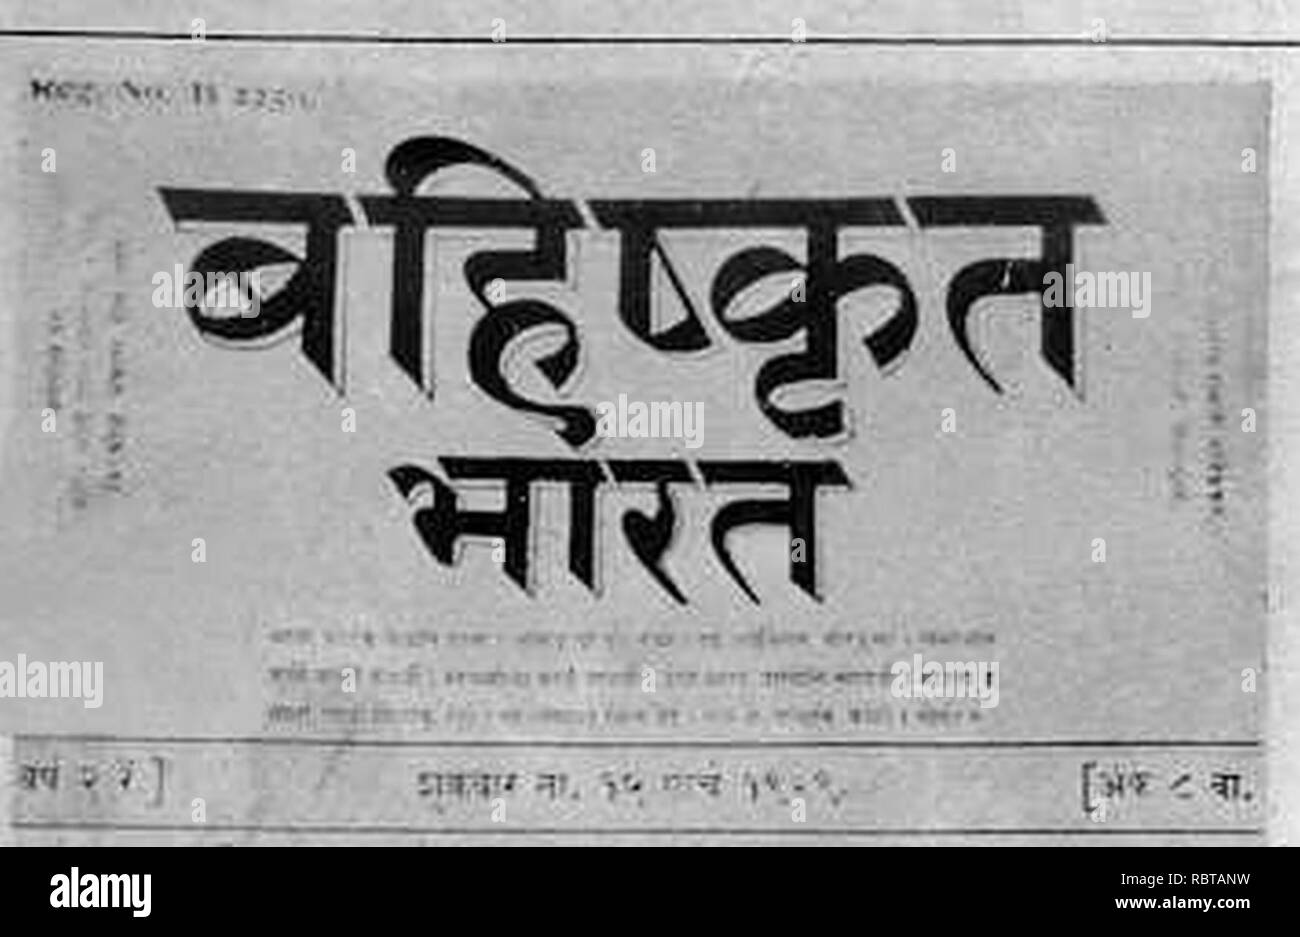 A page of the paper 'Bahishkrut Bharat' - The Discarded India. Second paper started in 1929 by Dr. Ambedkar for furthering the movement of the oppressed Indians. - Stock Image